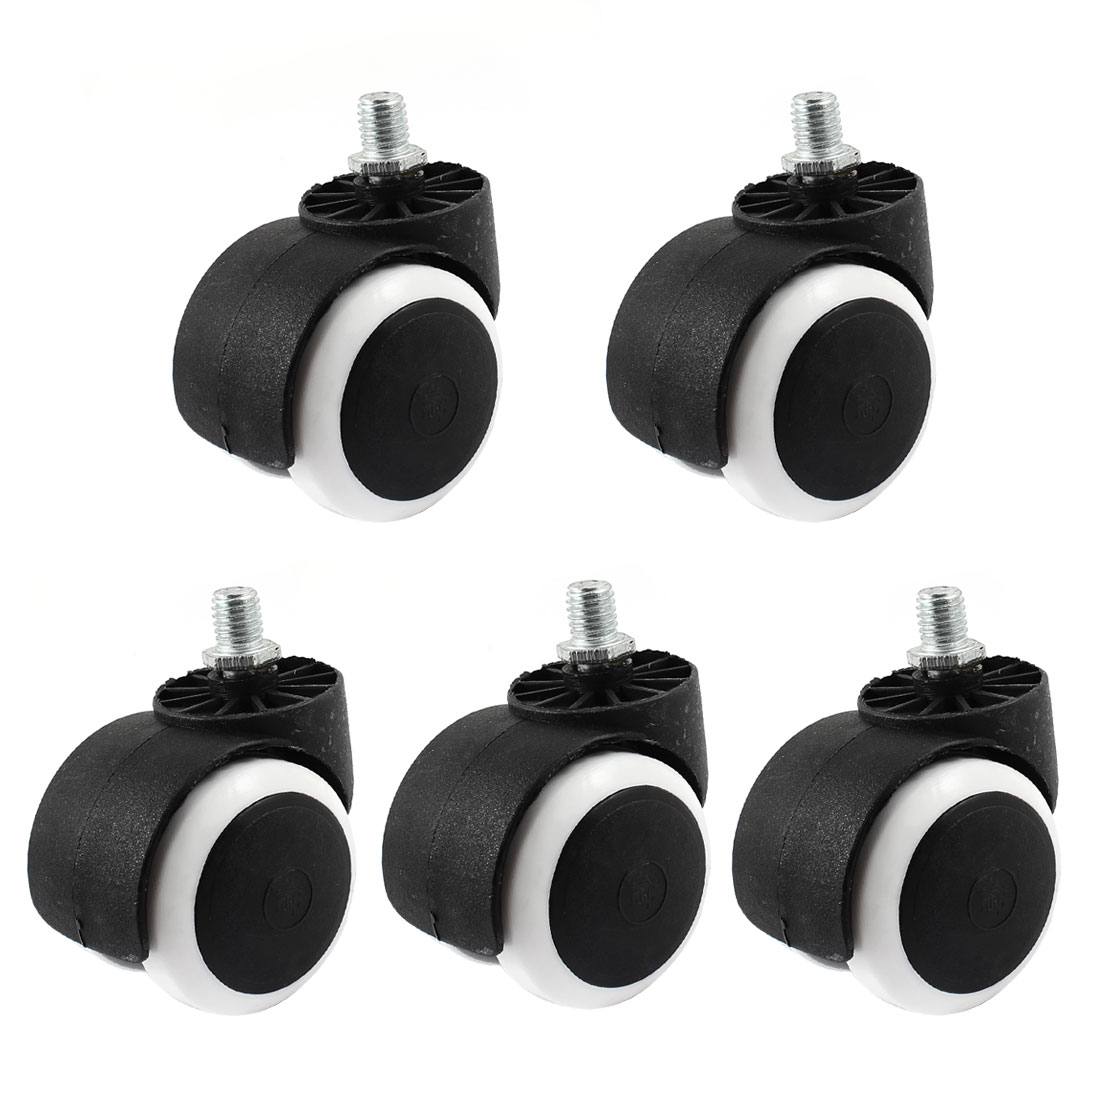 5pcs 11mm Lock Shaft Dia Plasltic Double Grip Ring Stem Caster Wheel for Office Chair Shopping Carts